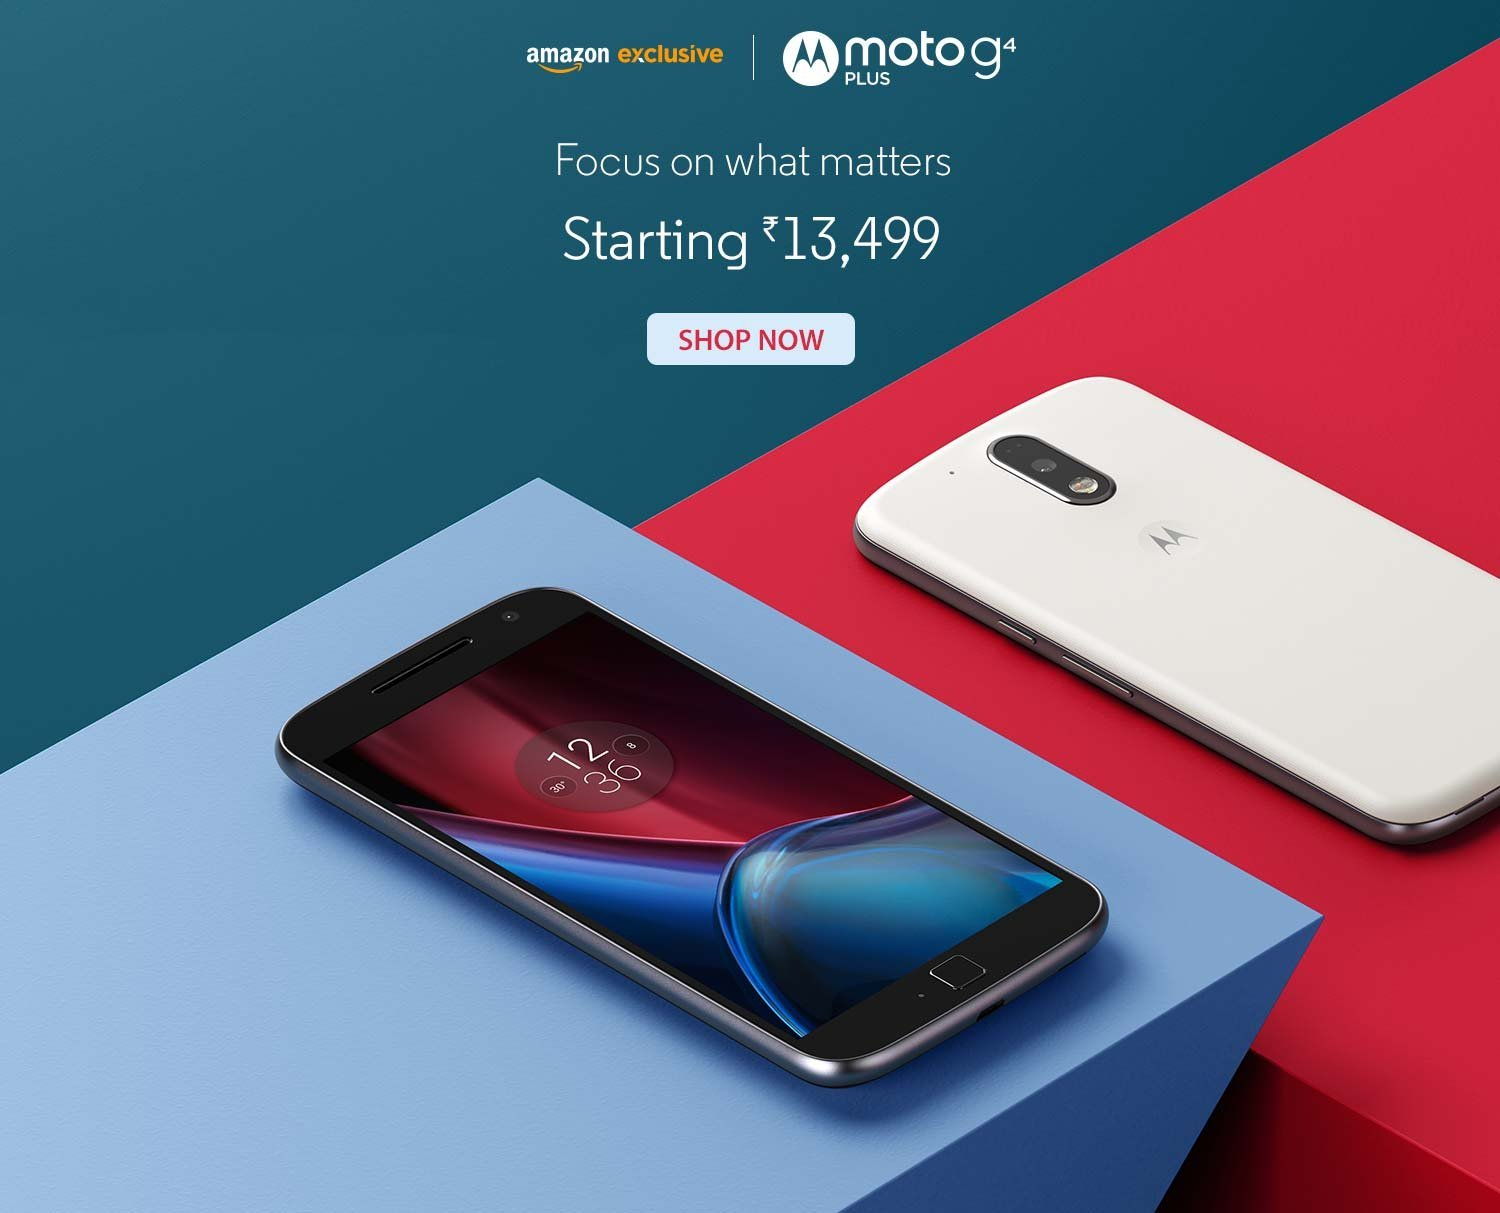 Moto G4 Plus Shop Now